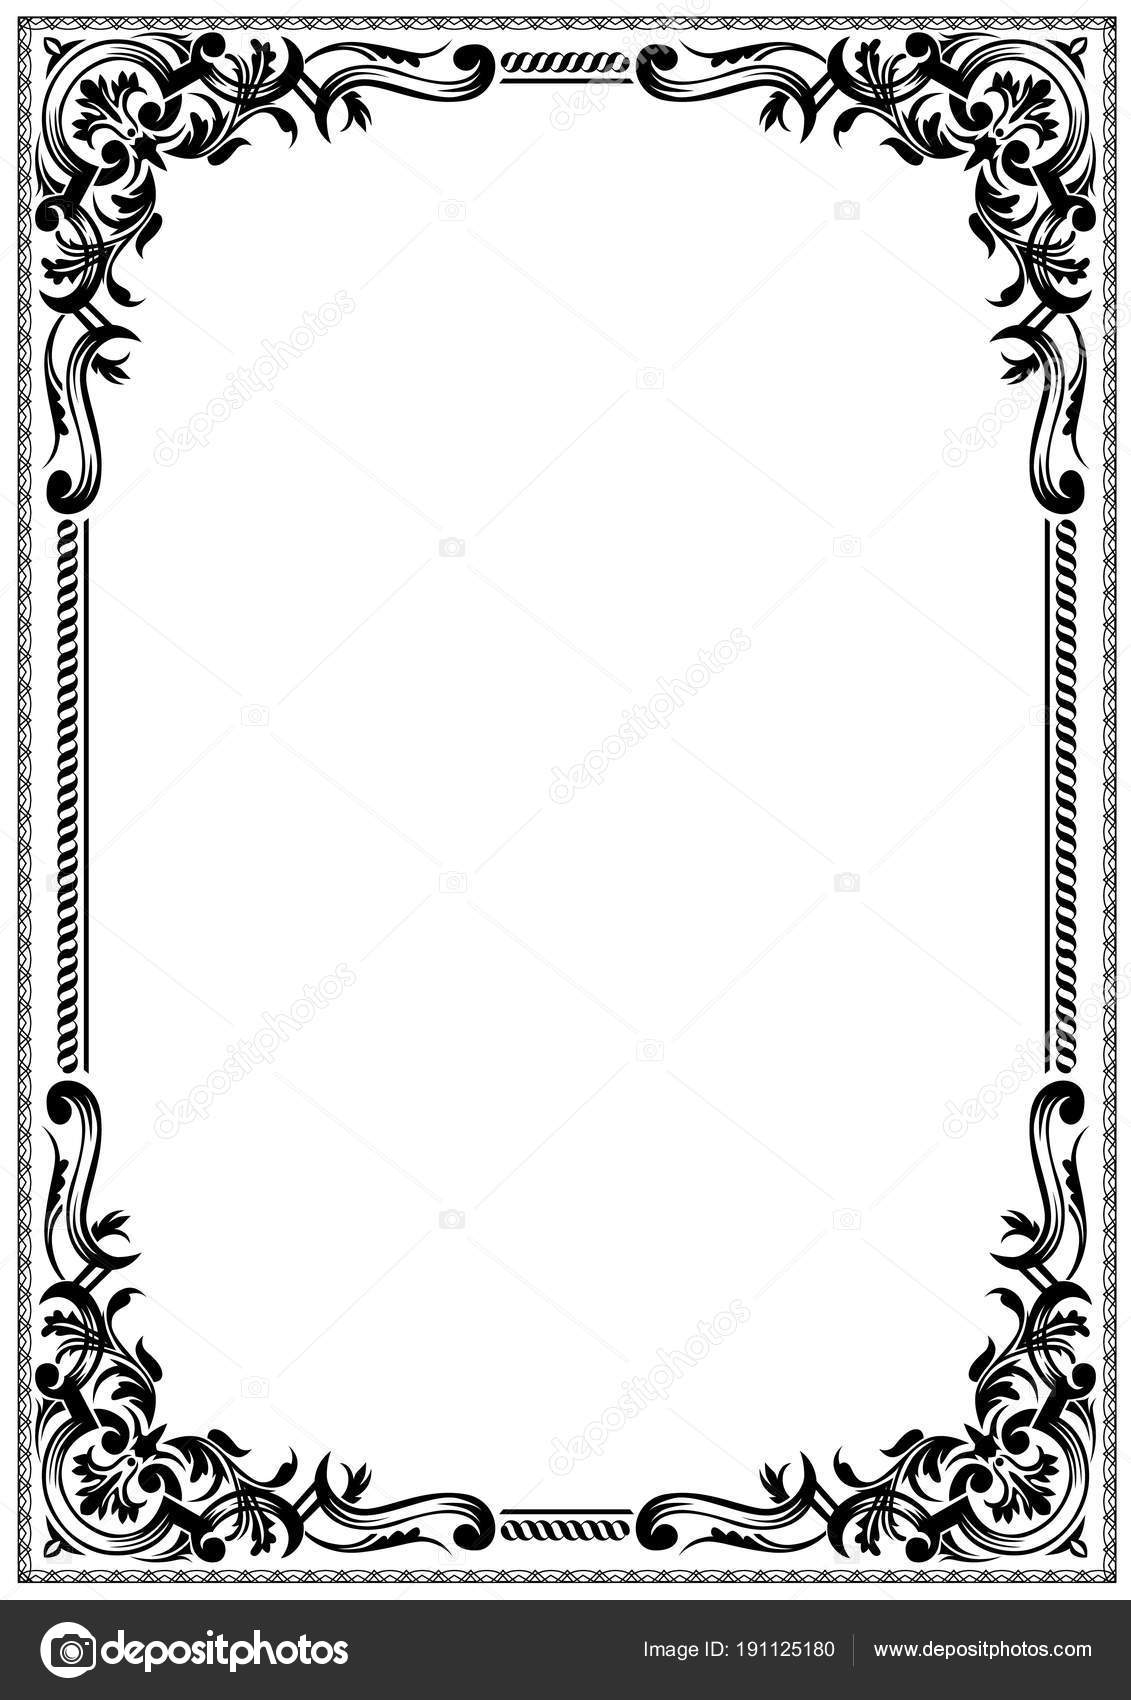 Delicate black white frame border design greeting cards other award delicate black and white frame border design for greeting cards or other award documents vector by tedgun m4hsunfo